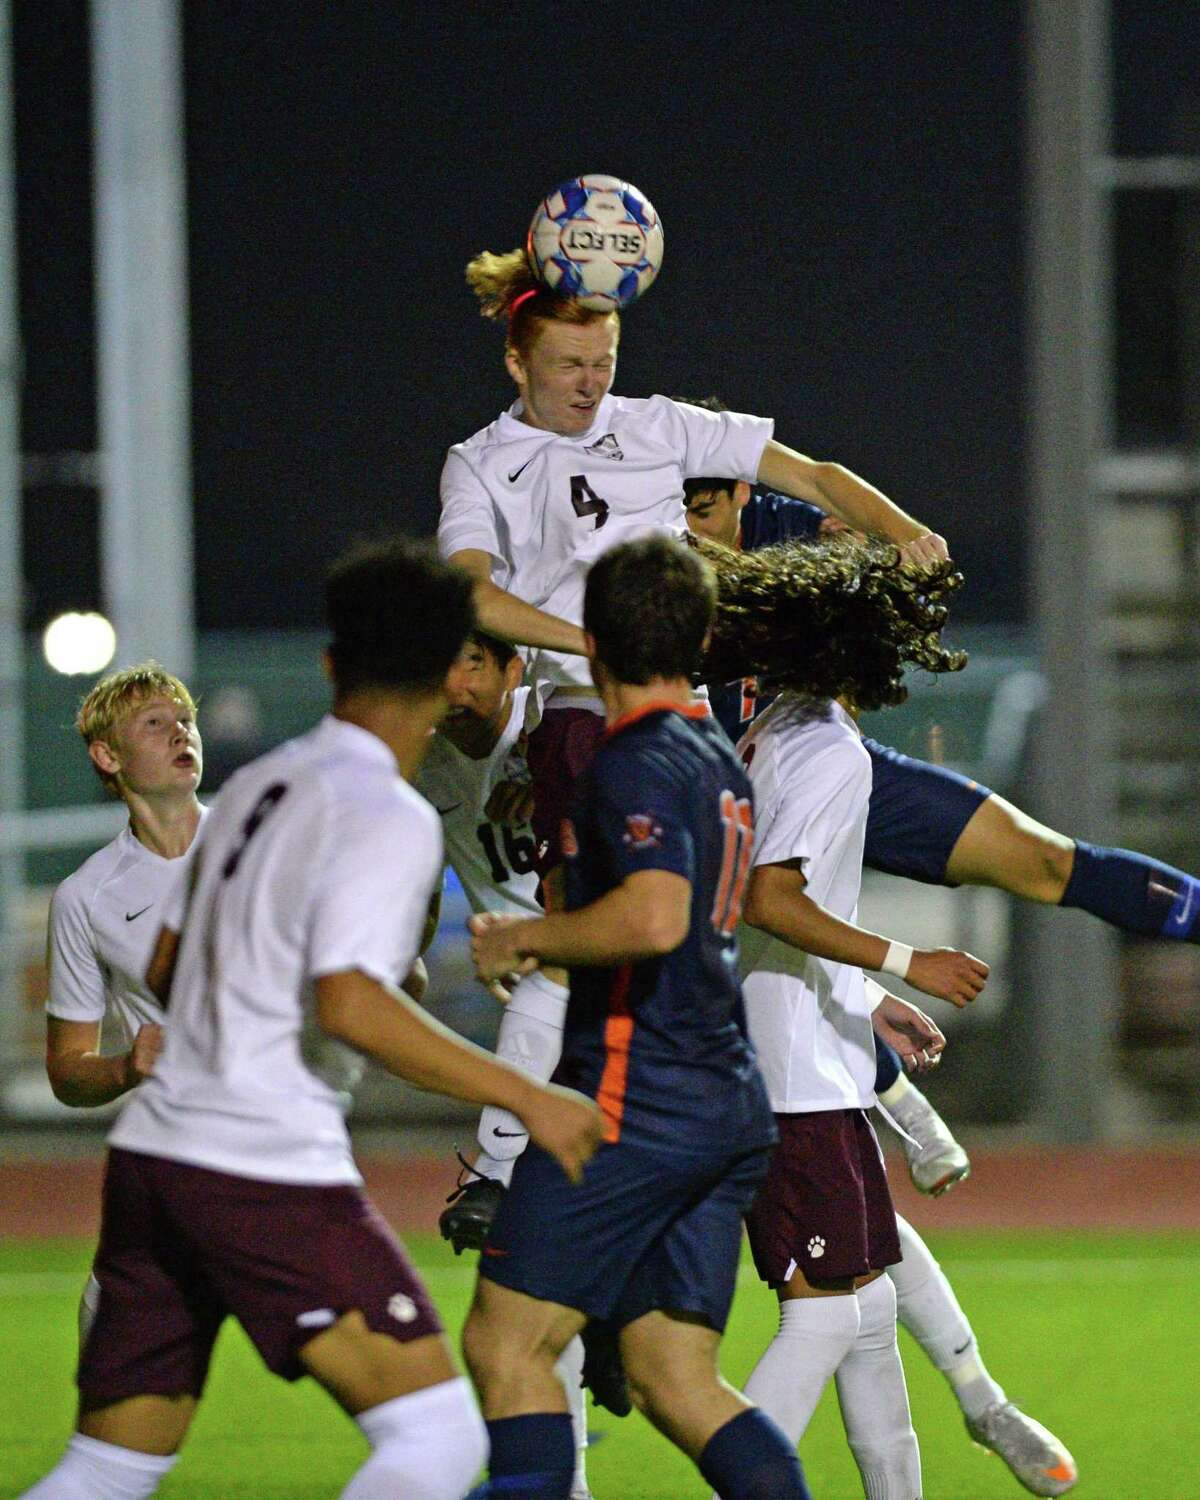 Jake Manzi (4) of Cinco Ranch heads a ball during the first half of a 6A-III District 19 soccer match between the Seven Lakes Spartans and the Cinco Ranch Cougars on Friday, March 12, 2021 at Seven Lakes HS, Katy, TX.